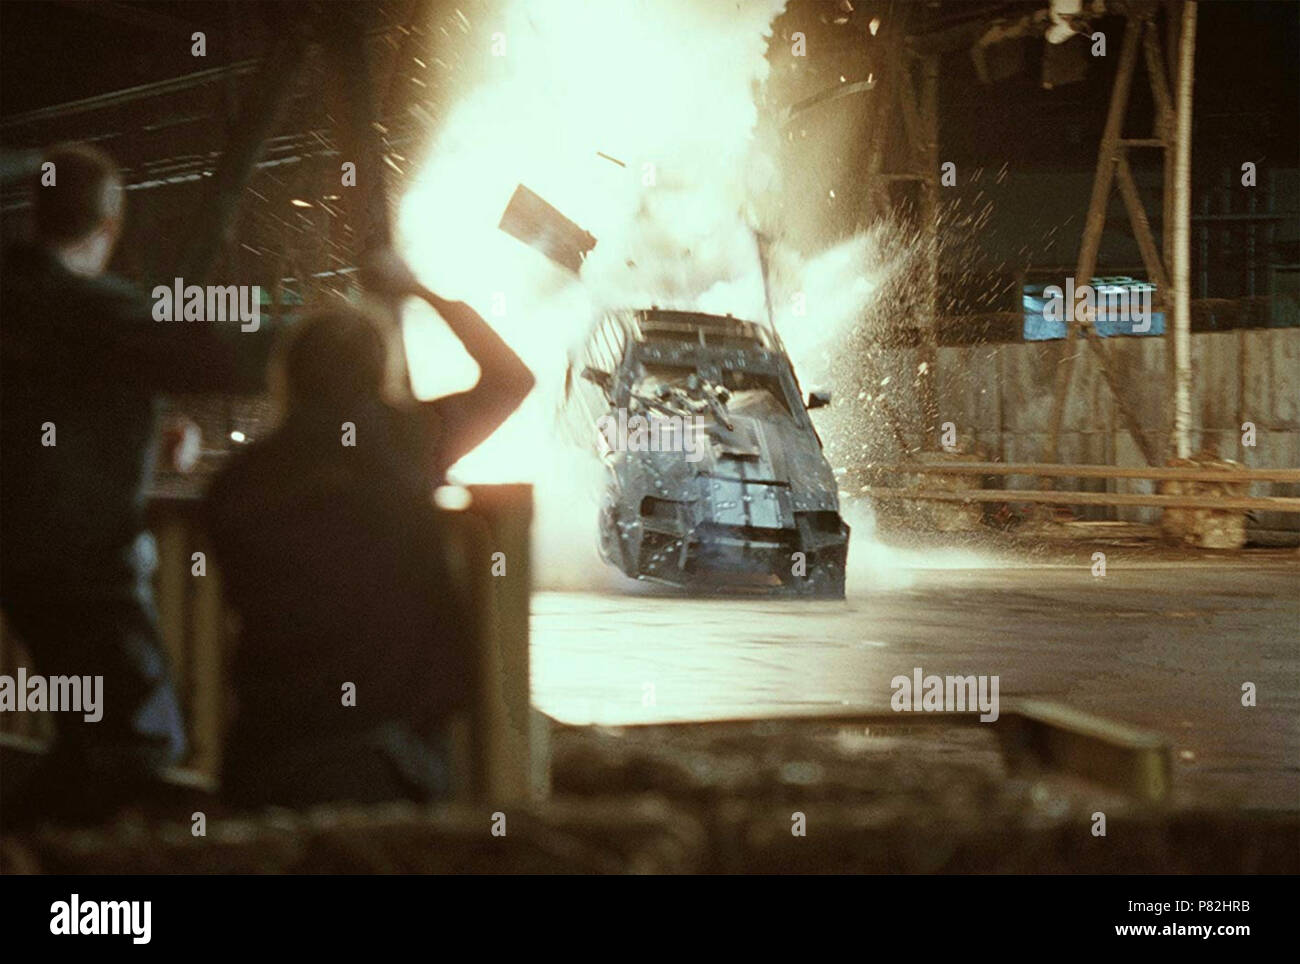 DEATH RACE 2008 Universal Pictures film - Stock Image